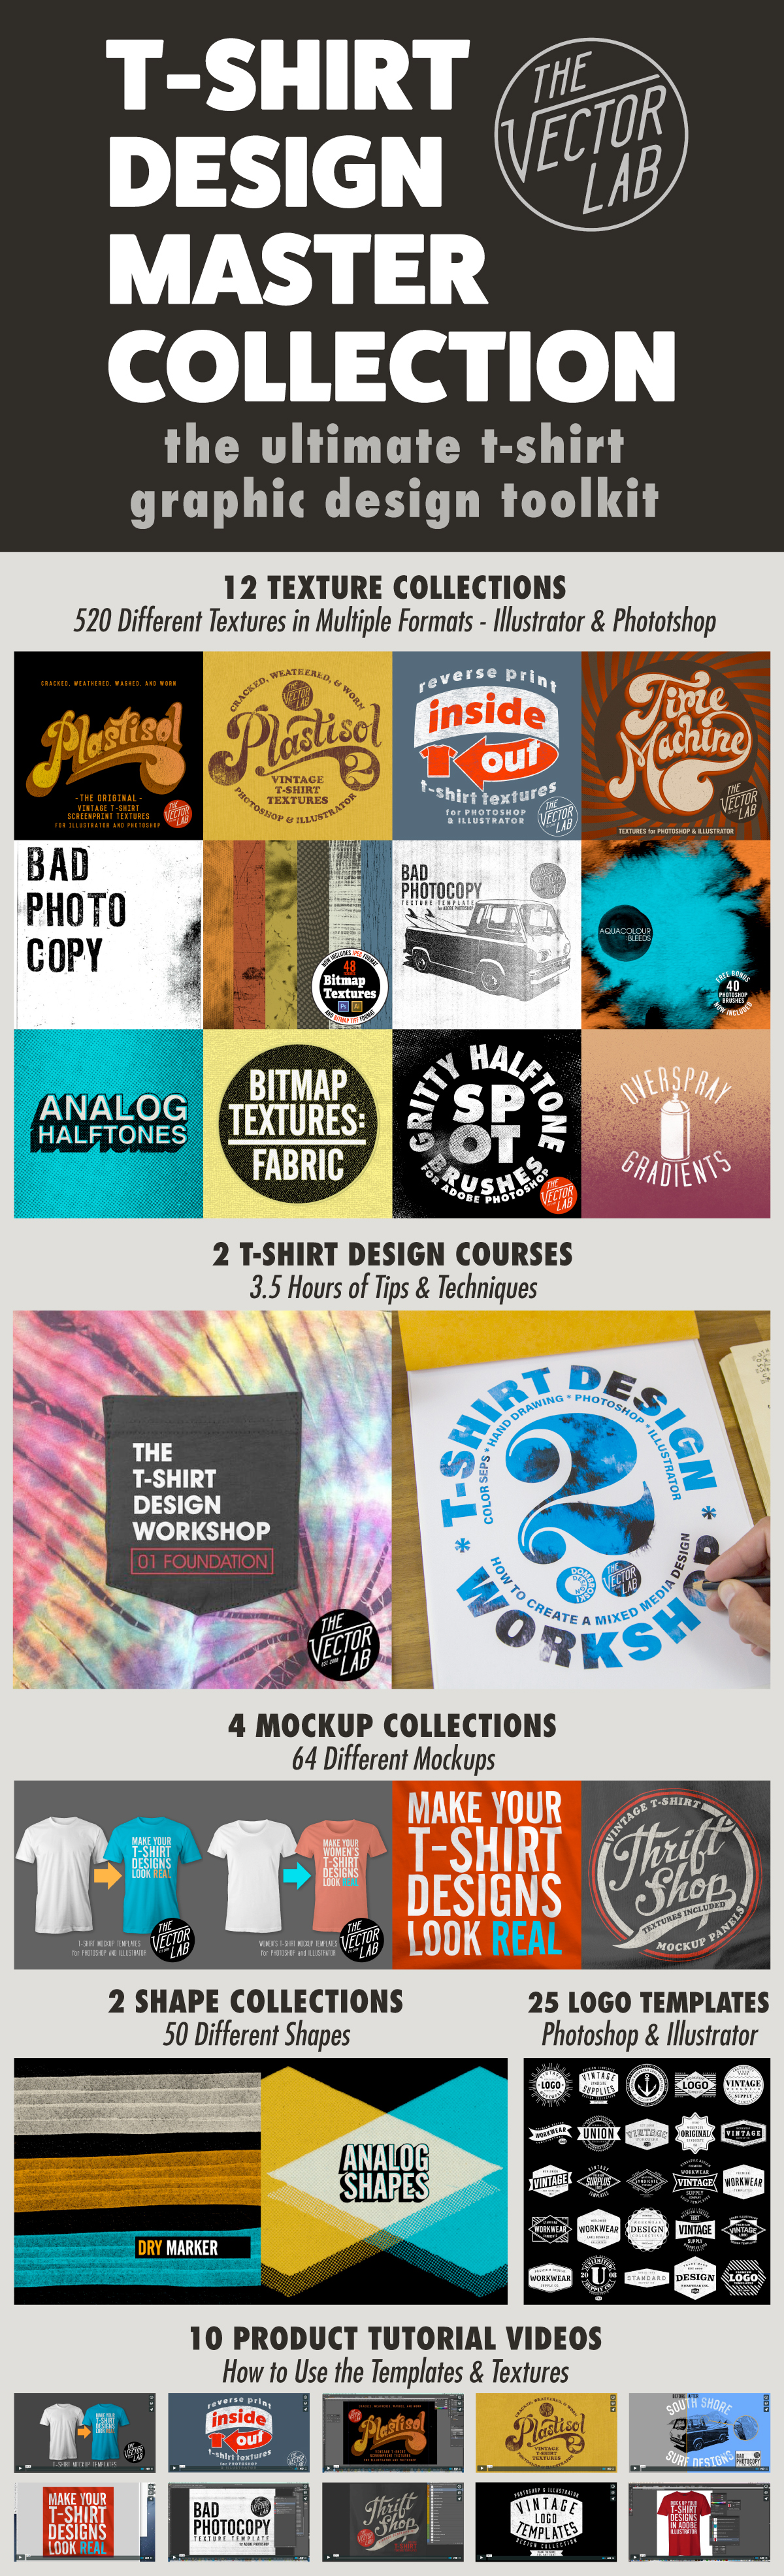 T-Shirt Design Master Collection